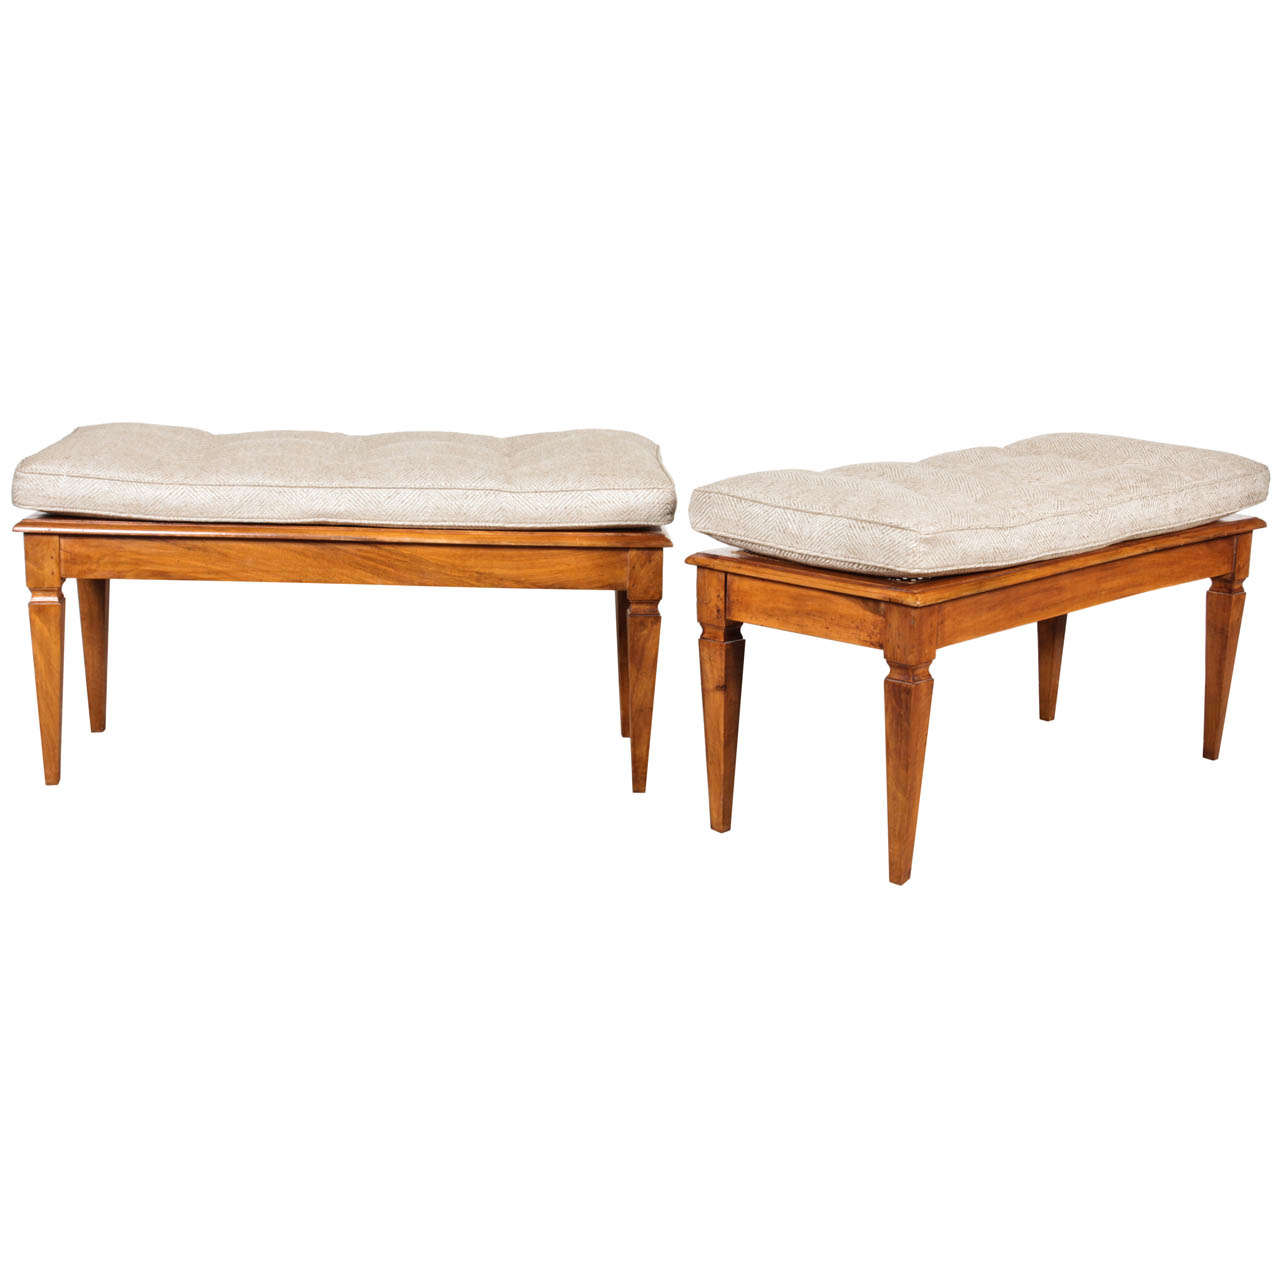 One Walnut Caned Bench With Tufted Cushion At 1stdibs